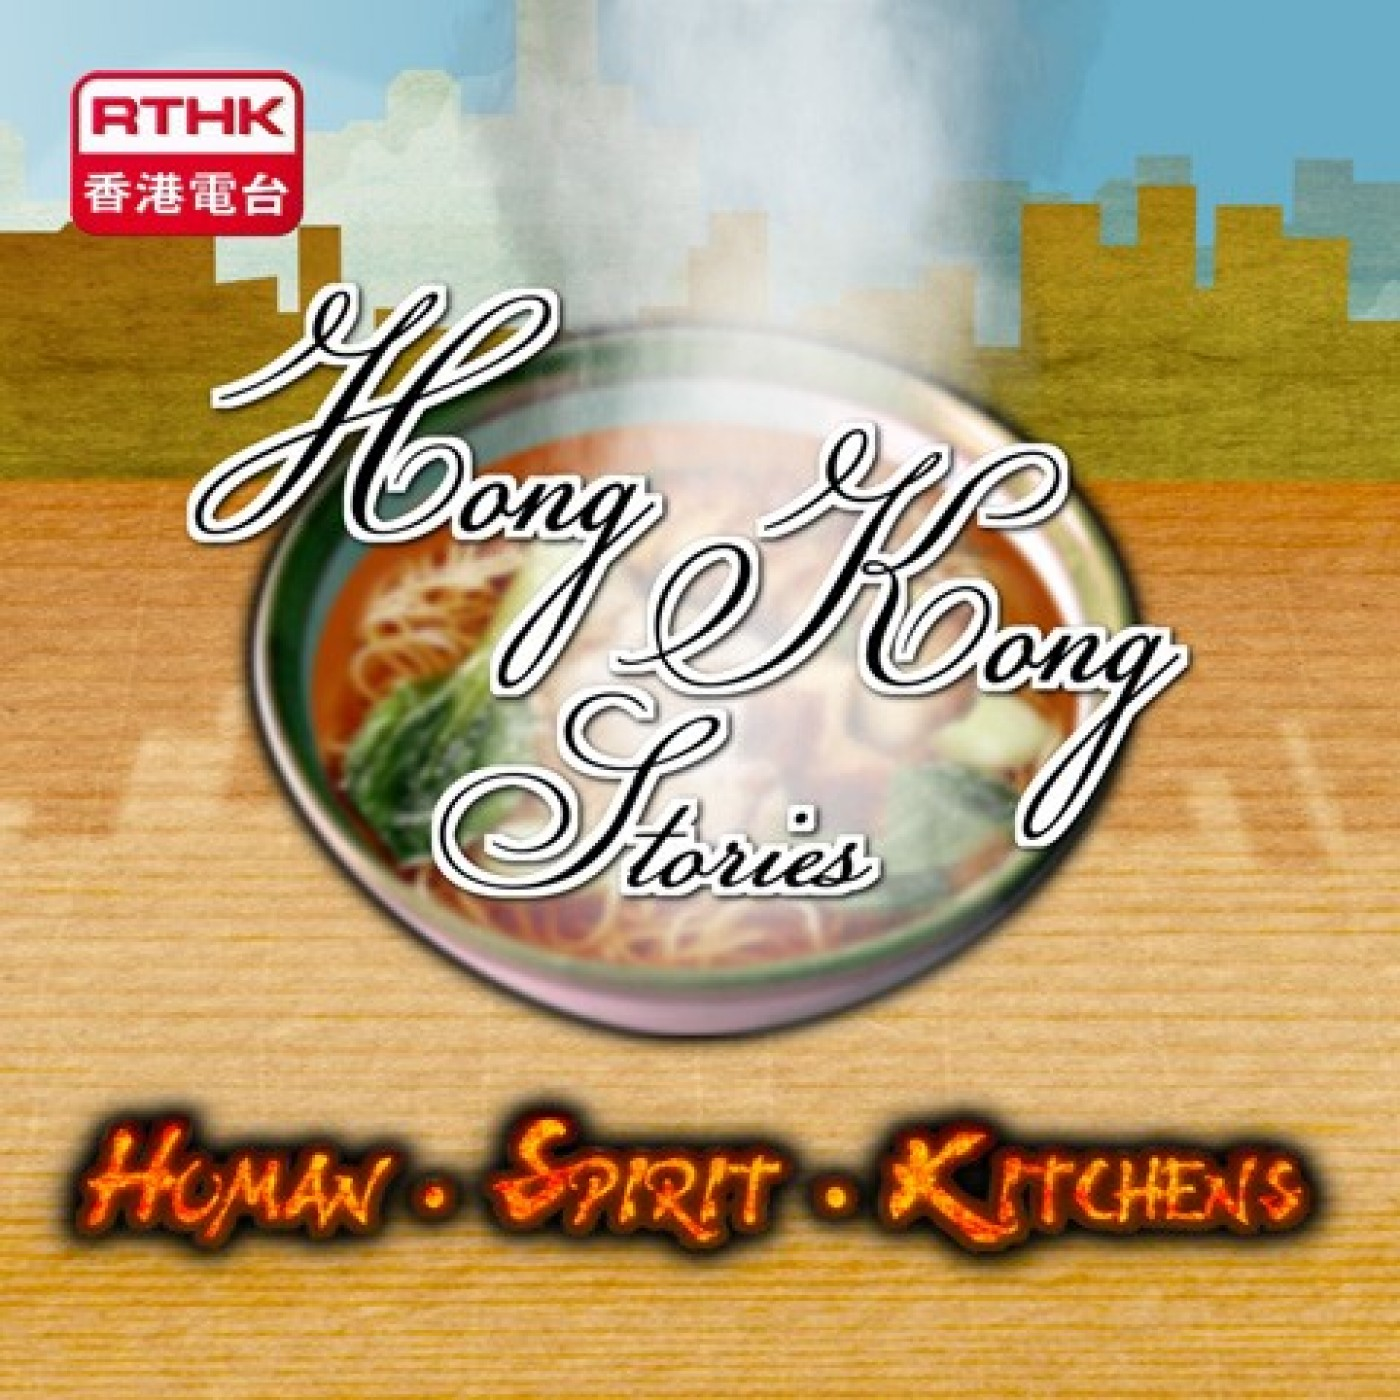 HONG KONG STORIES(XXI) HUMAN.SPIRIT.KITCHENS